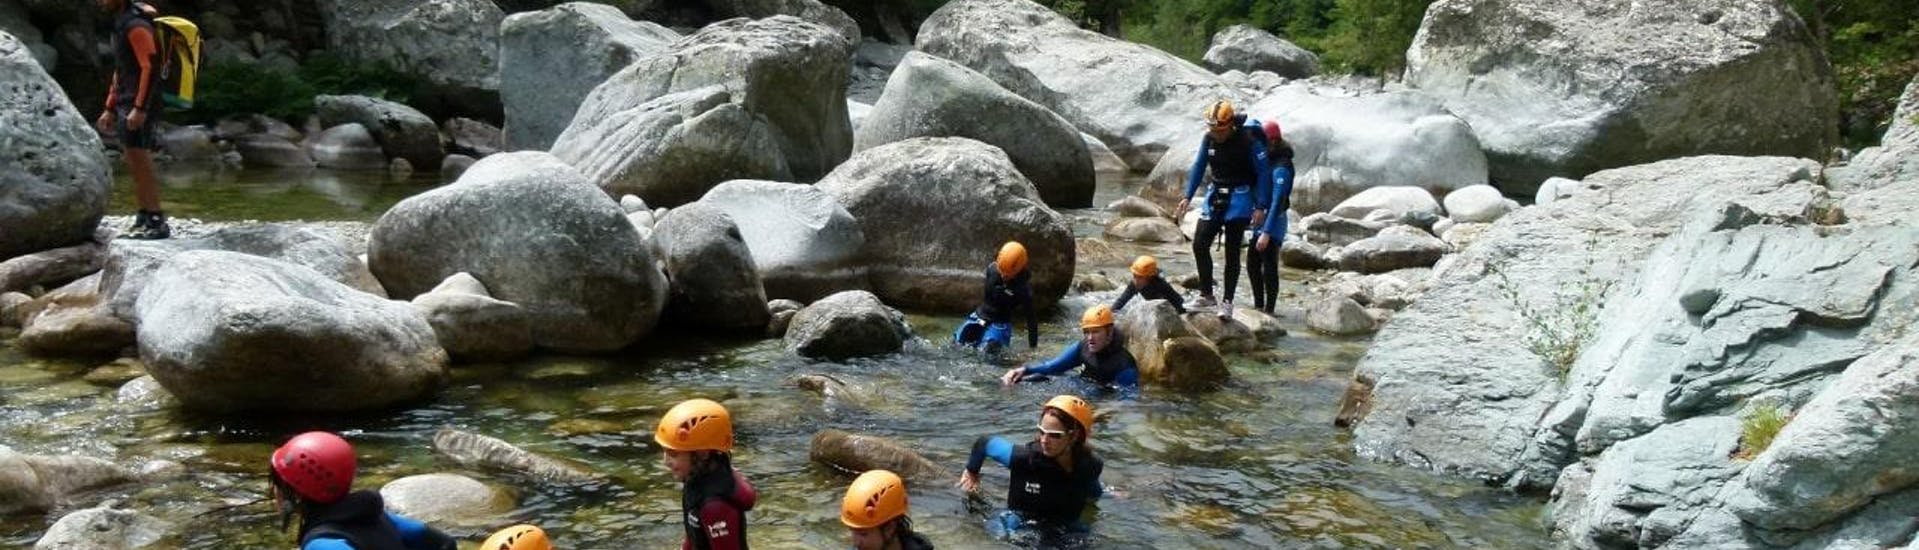 A family walks in the Canyon du Vecchio during the Canyoning activity for families with their instructor from Canyon Corse.